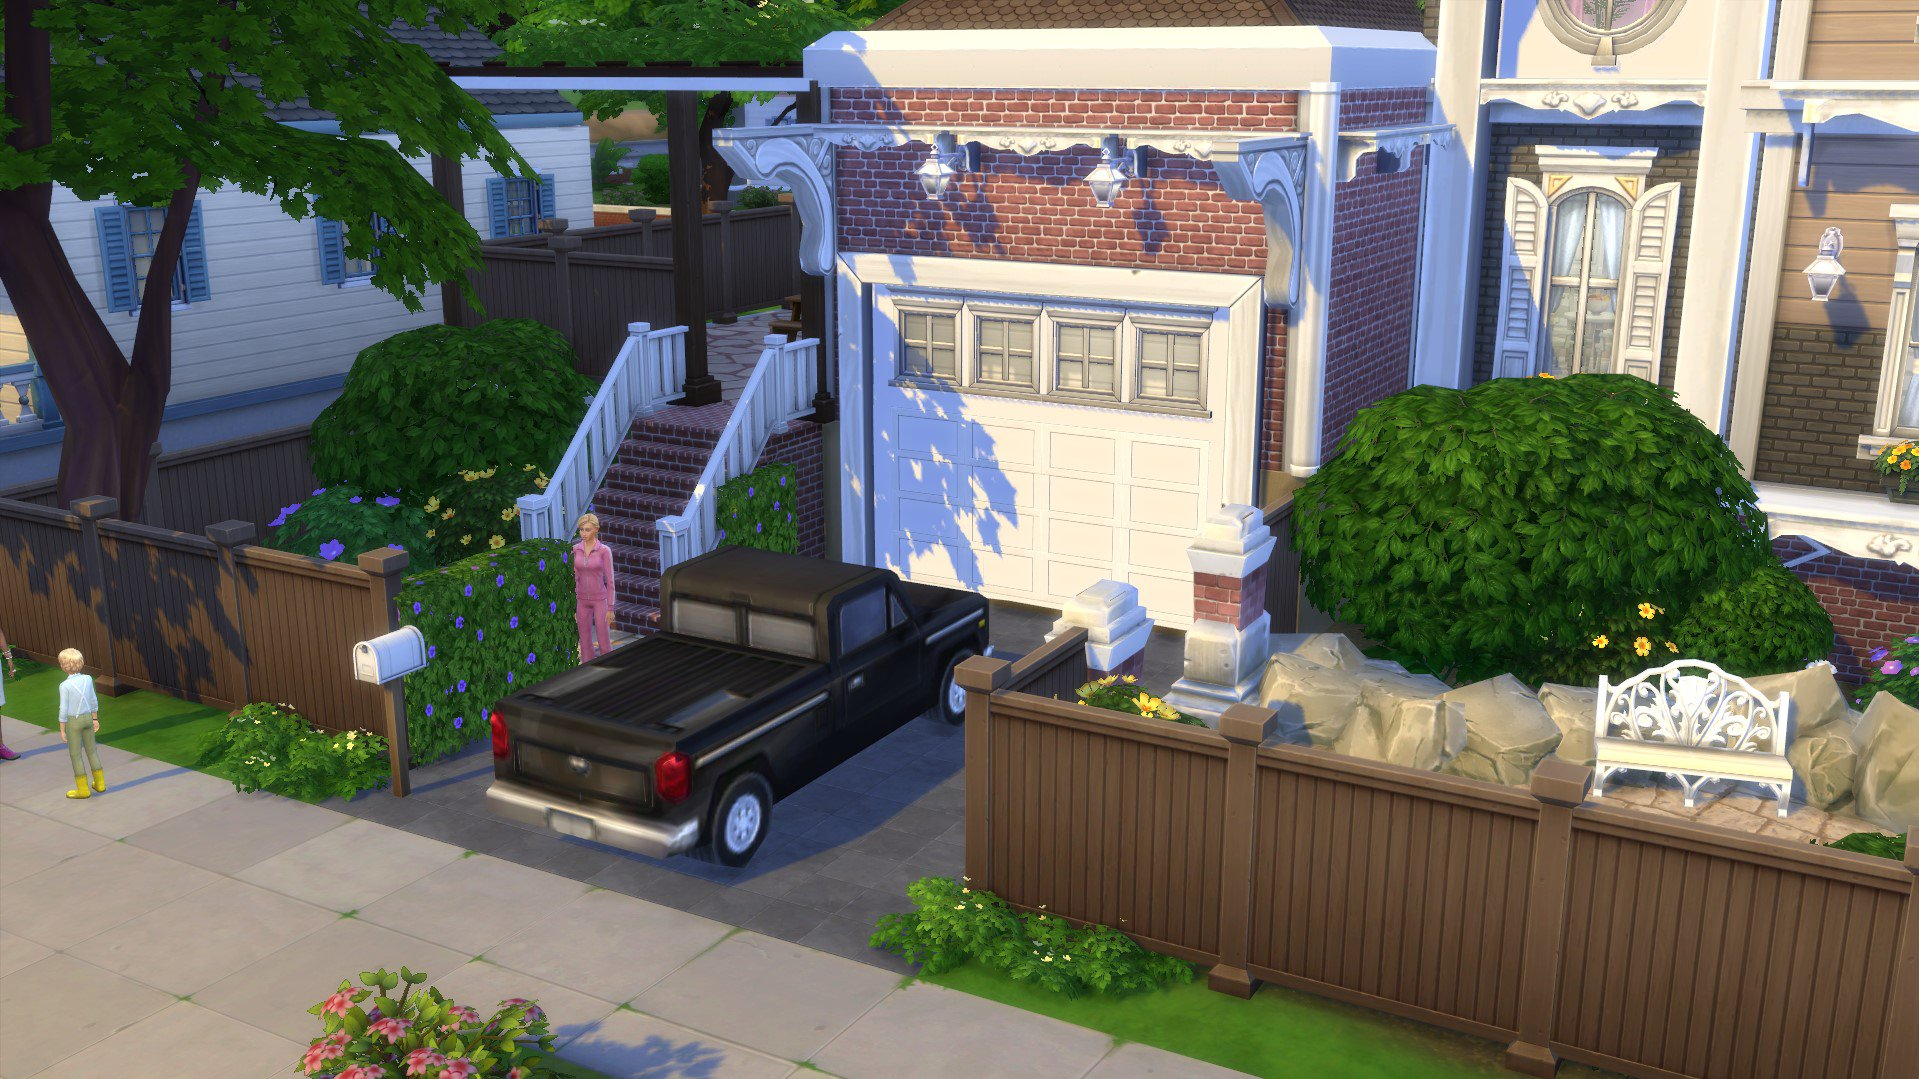 Kate Emerald On Twitter I Made A Tutorial That Explains How To Build A Ground Level Garage In Combination With A Raised Foundation No Cc Used And Just Base Game Objects For